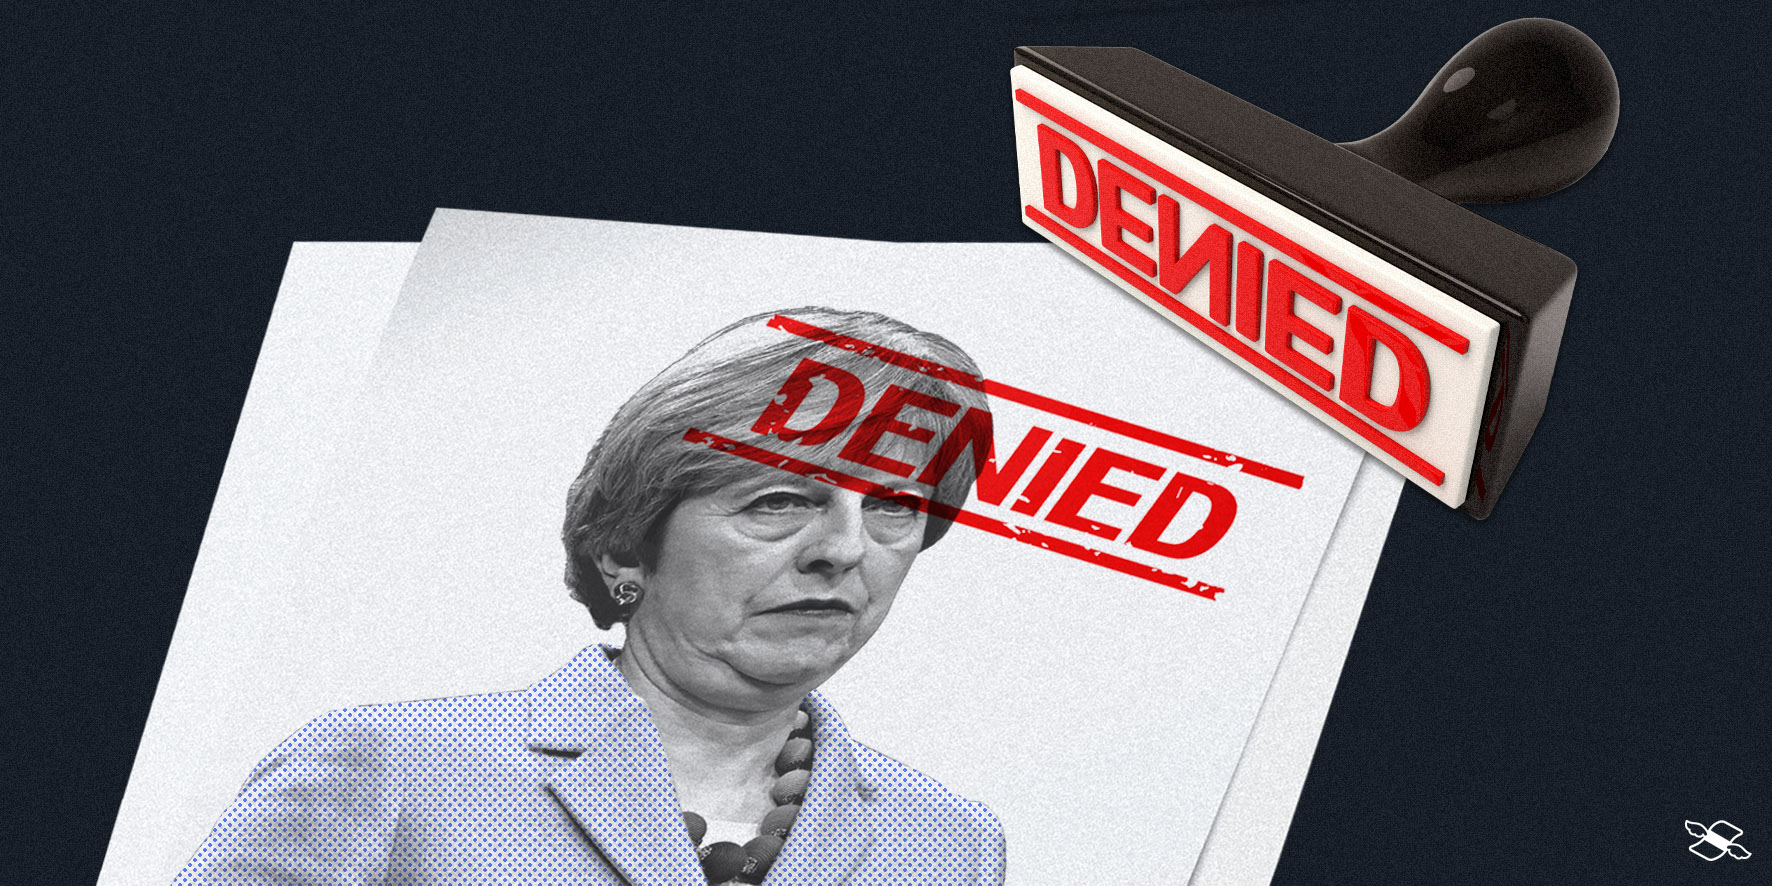 The UK voted down another Brexit deal